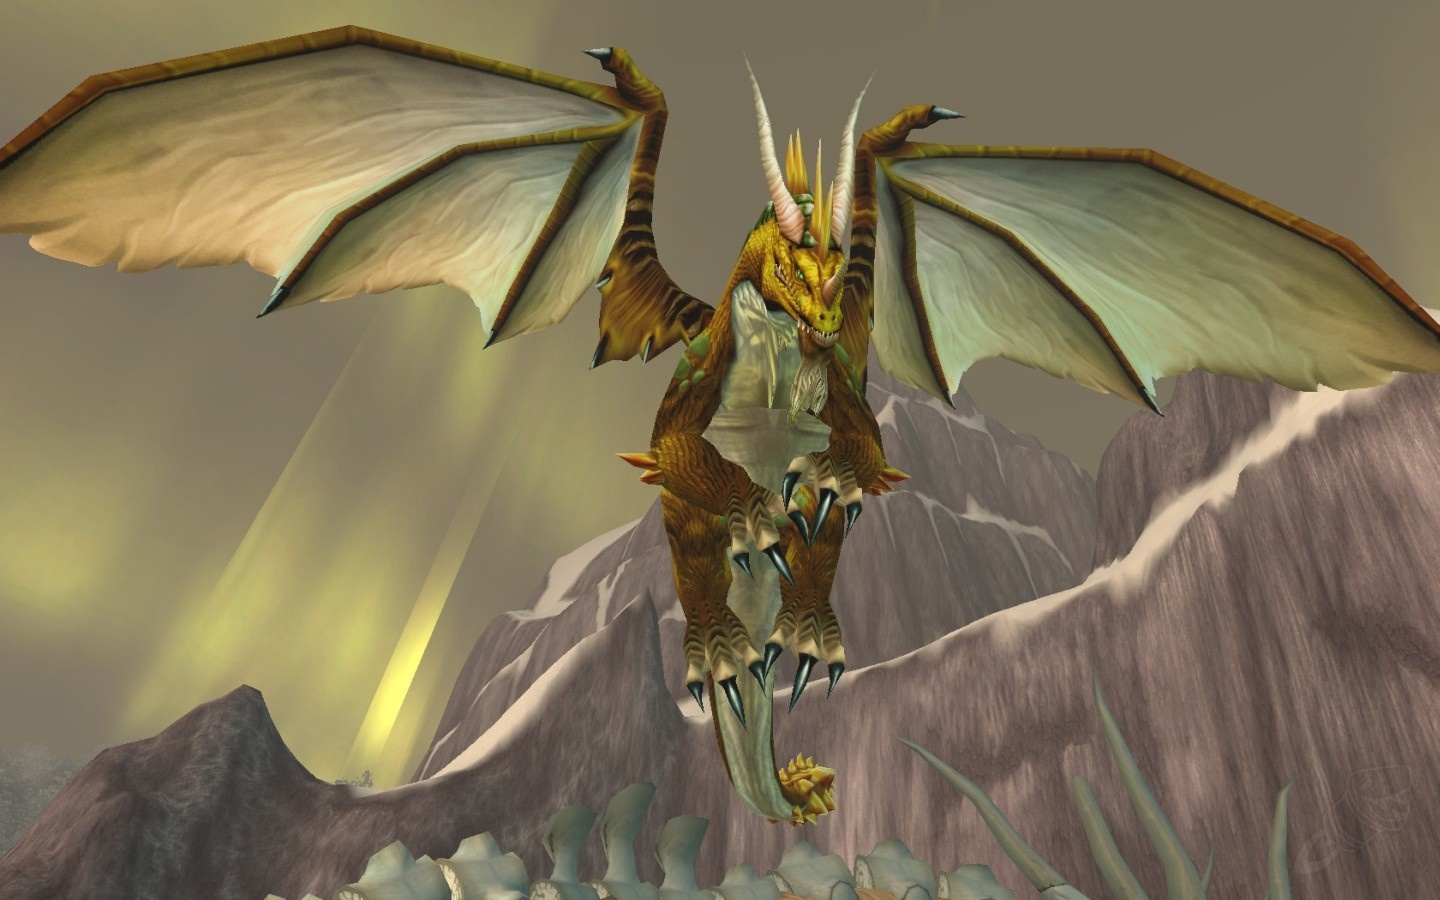 Nozdormu dans la Désolation des dragons - World of Warcraft